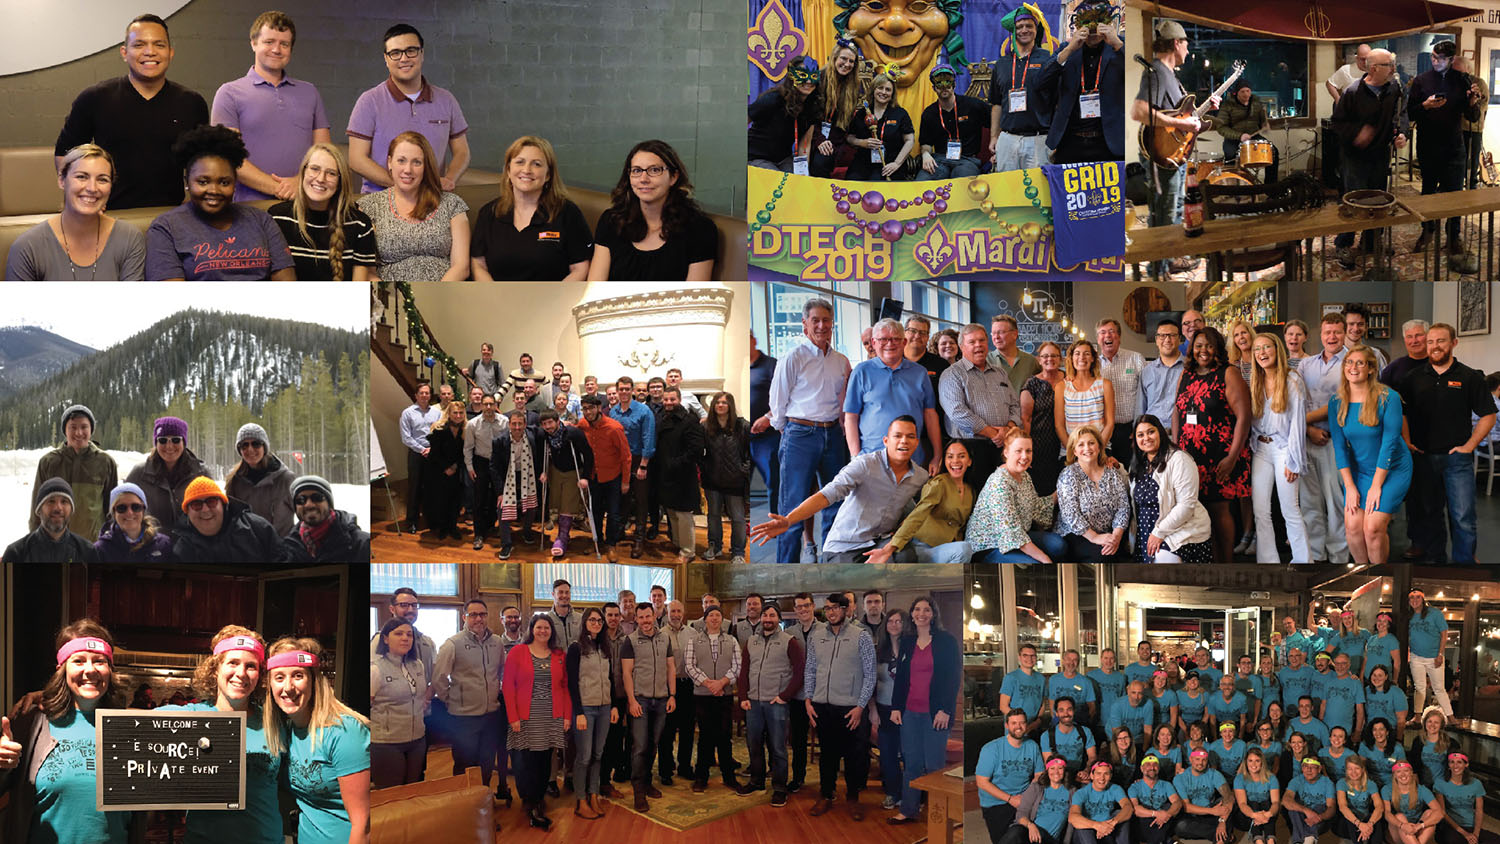 A collage of images of E Source employees, both formal and candid, from all of the company's divisions across the US and Canada.